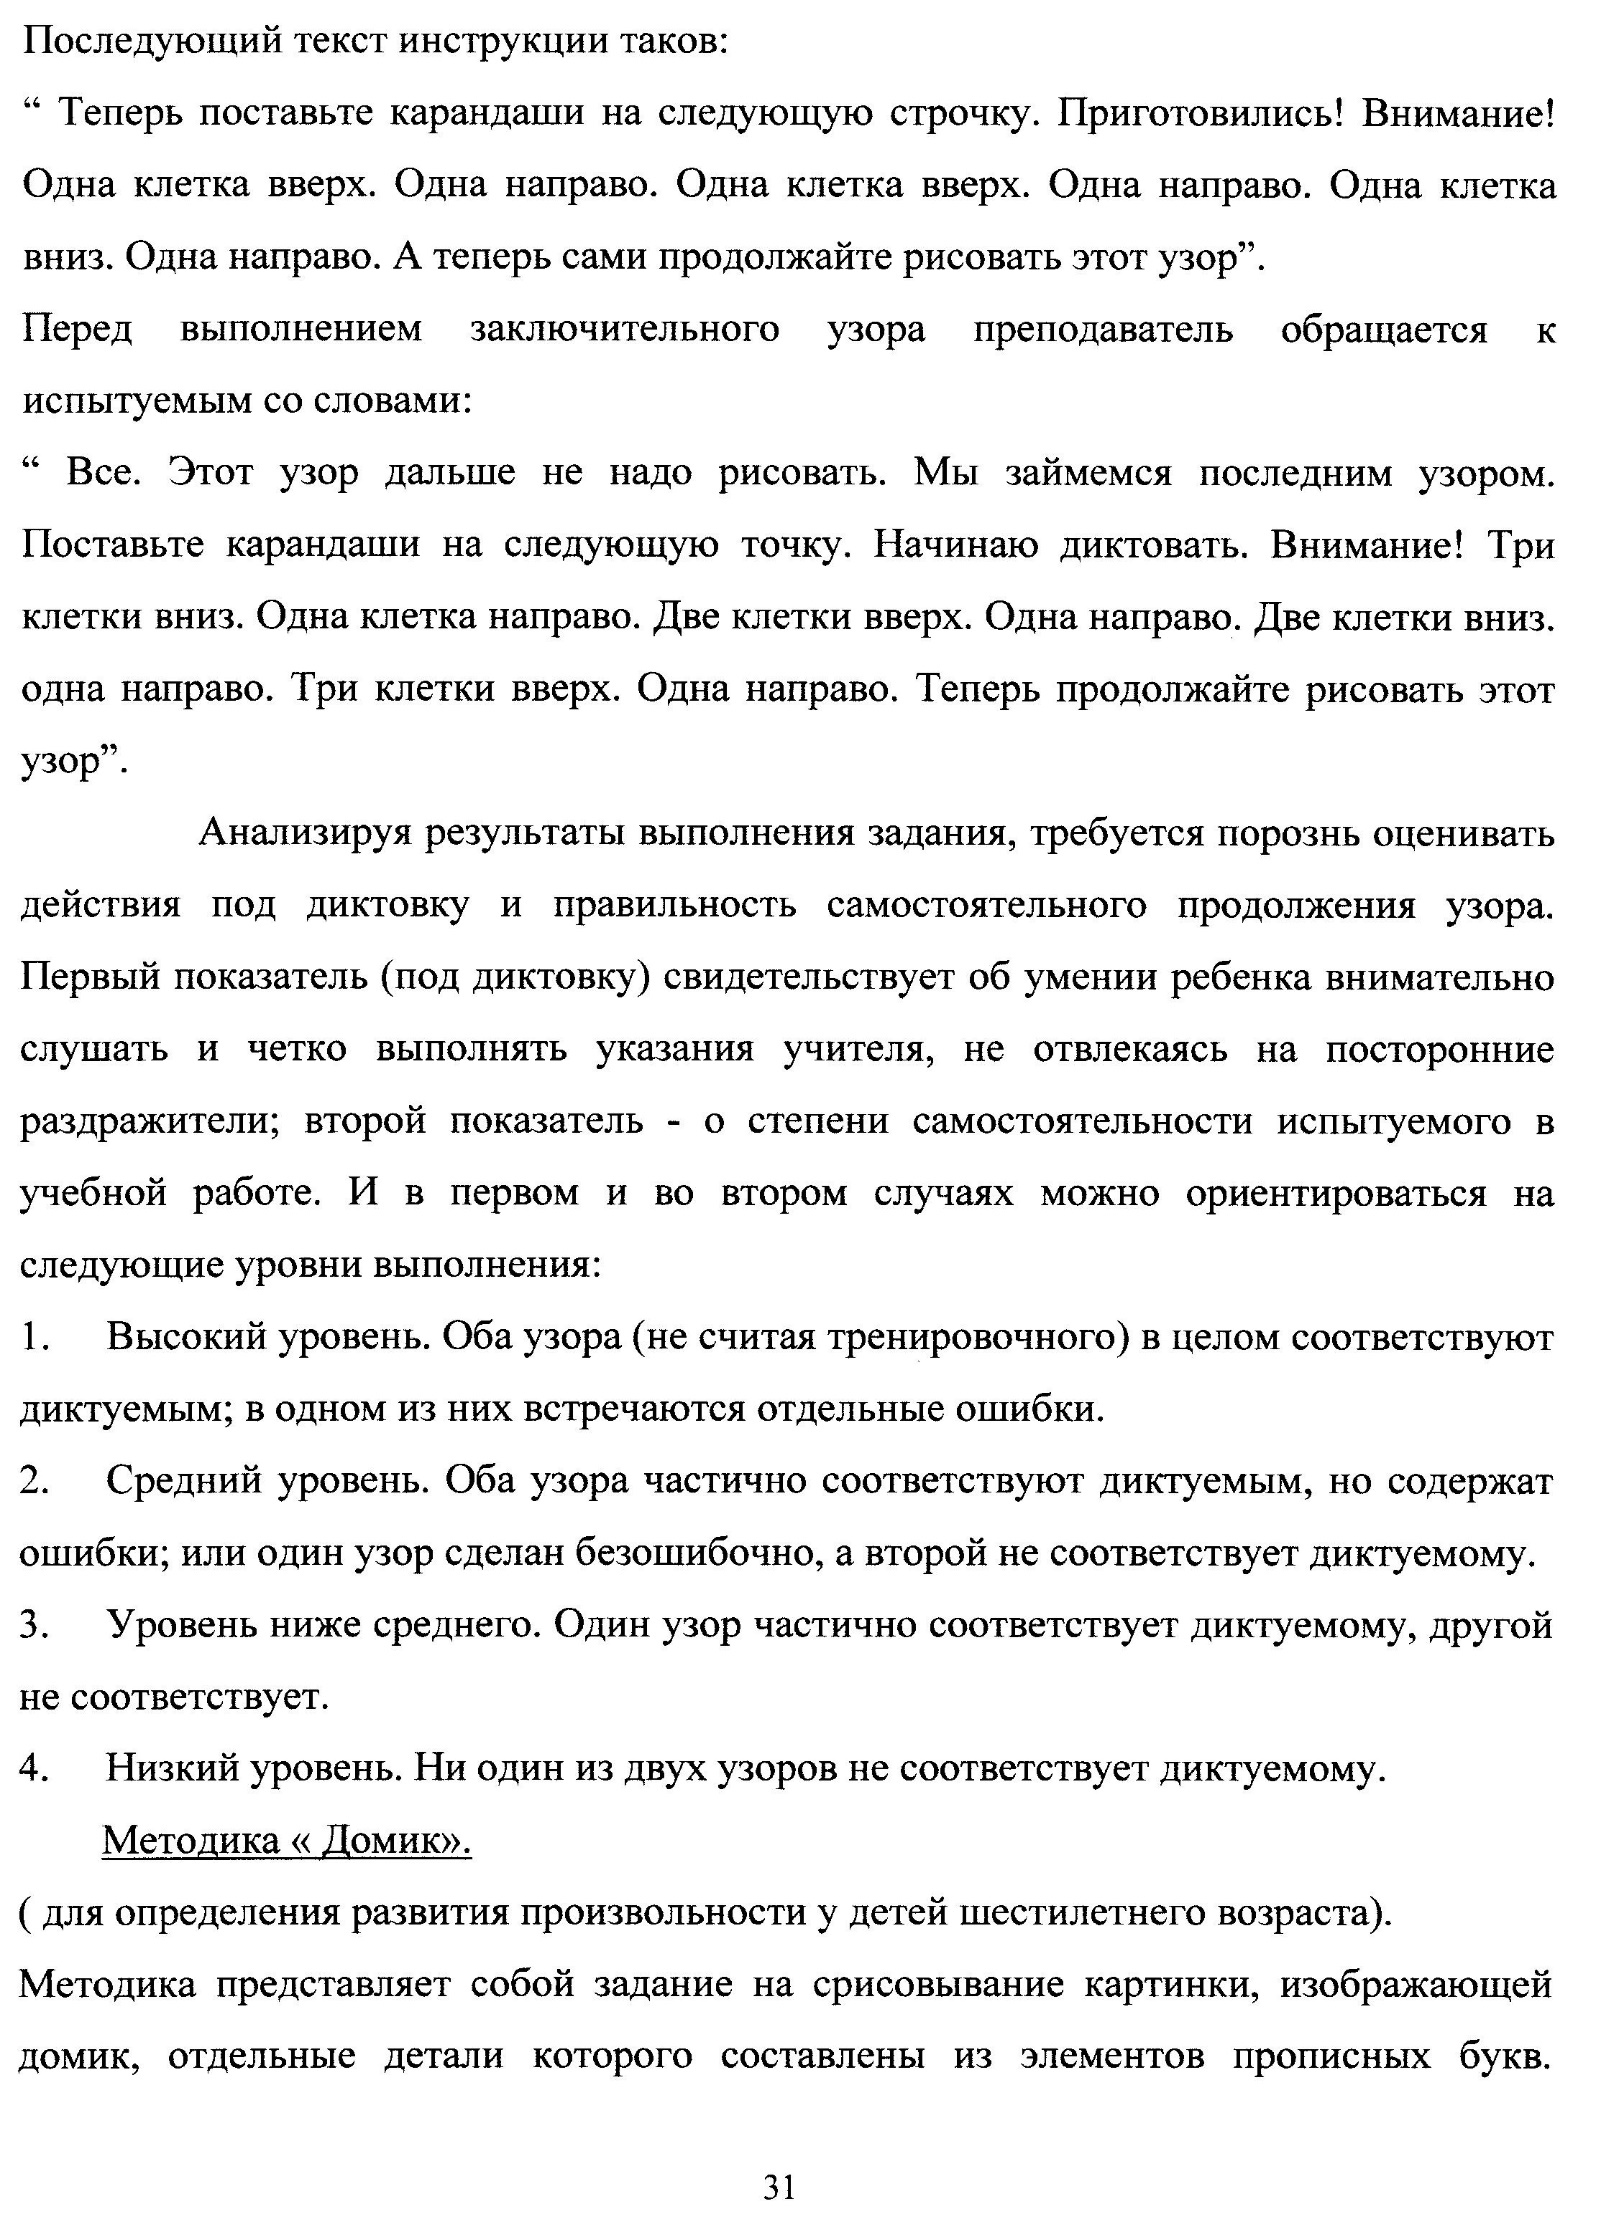 C:\Users\ЛАРИСА\Documents\Scanned Documents\Рисунок (135).jpg